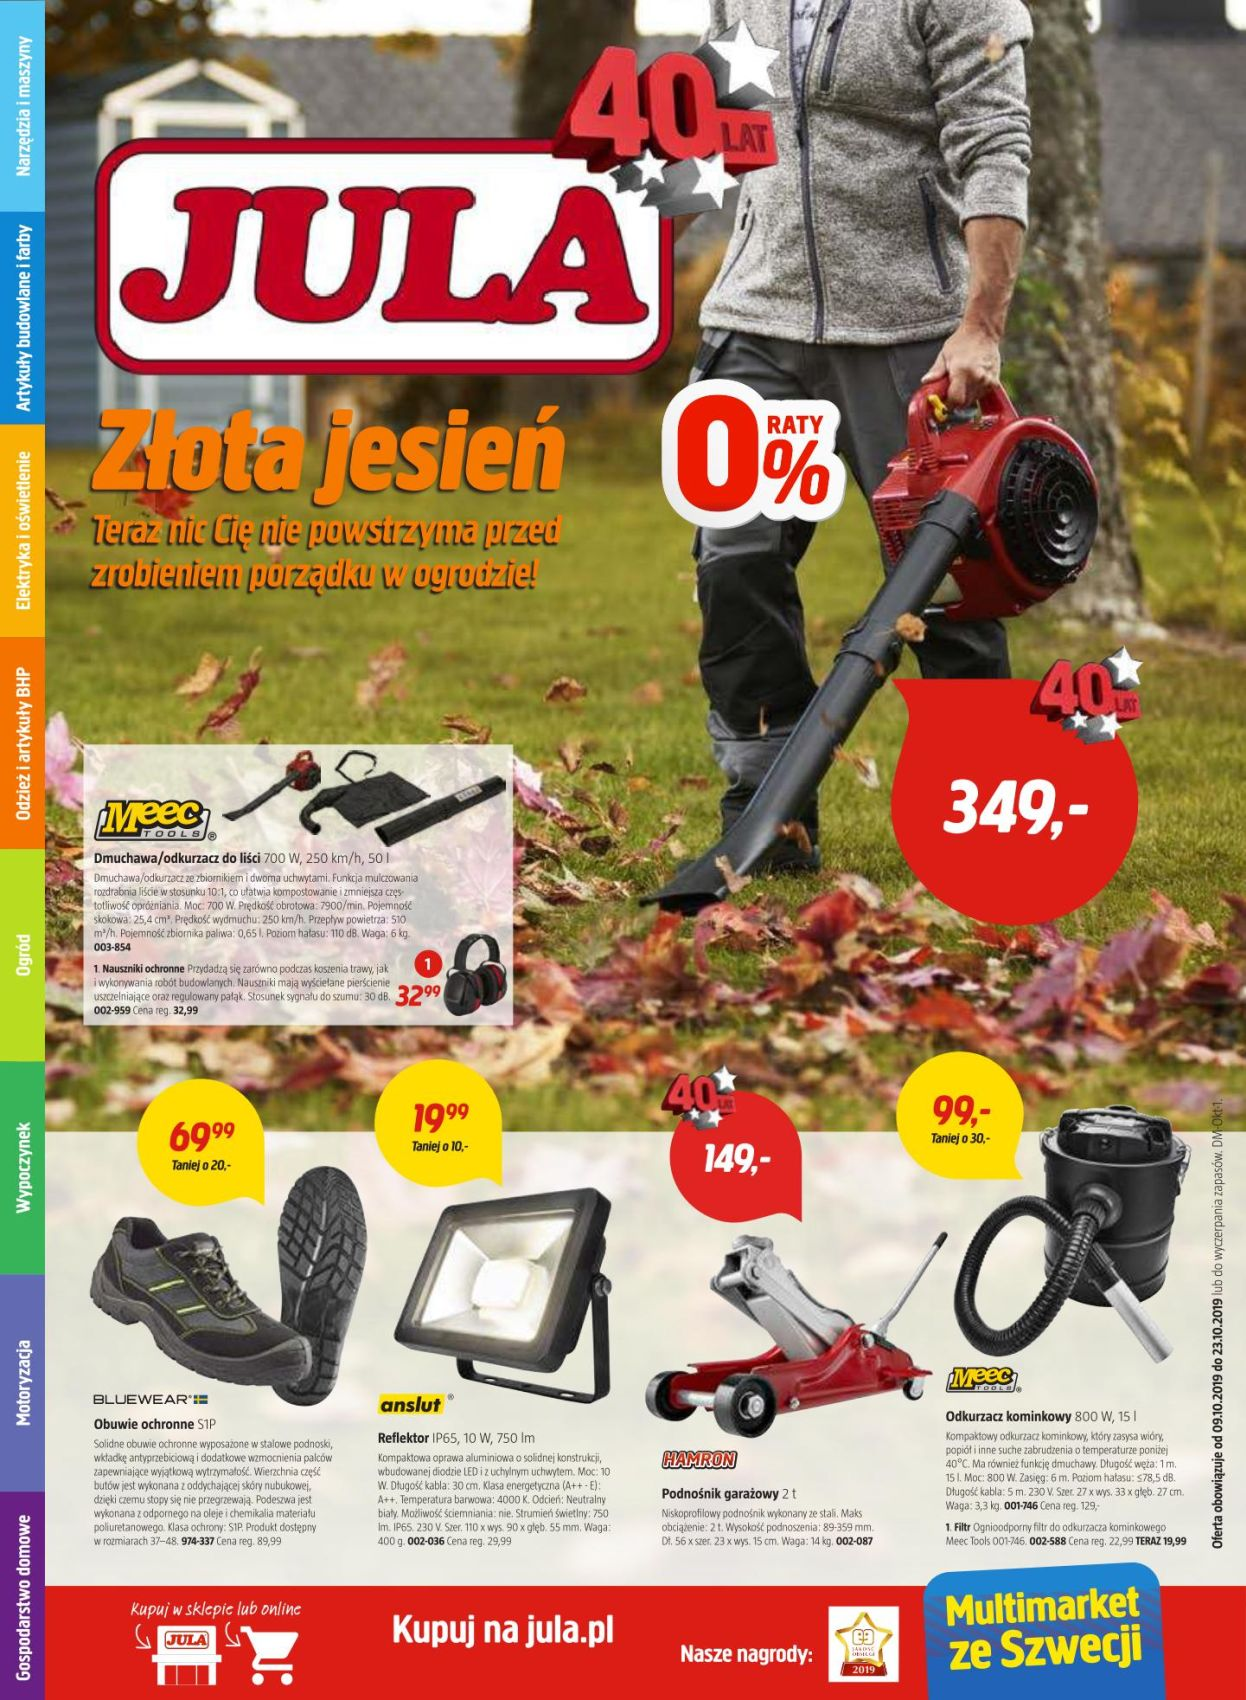 Gazetka Jula od 09.10.2019 do 23.10.2019